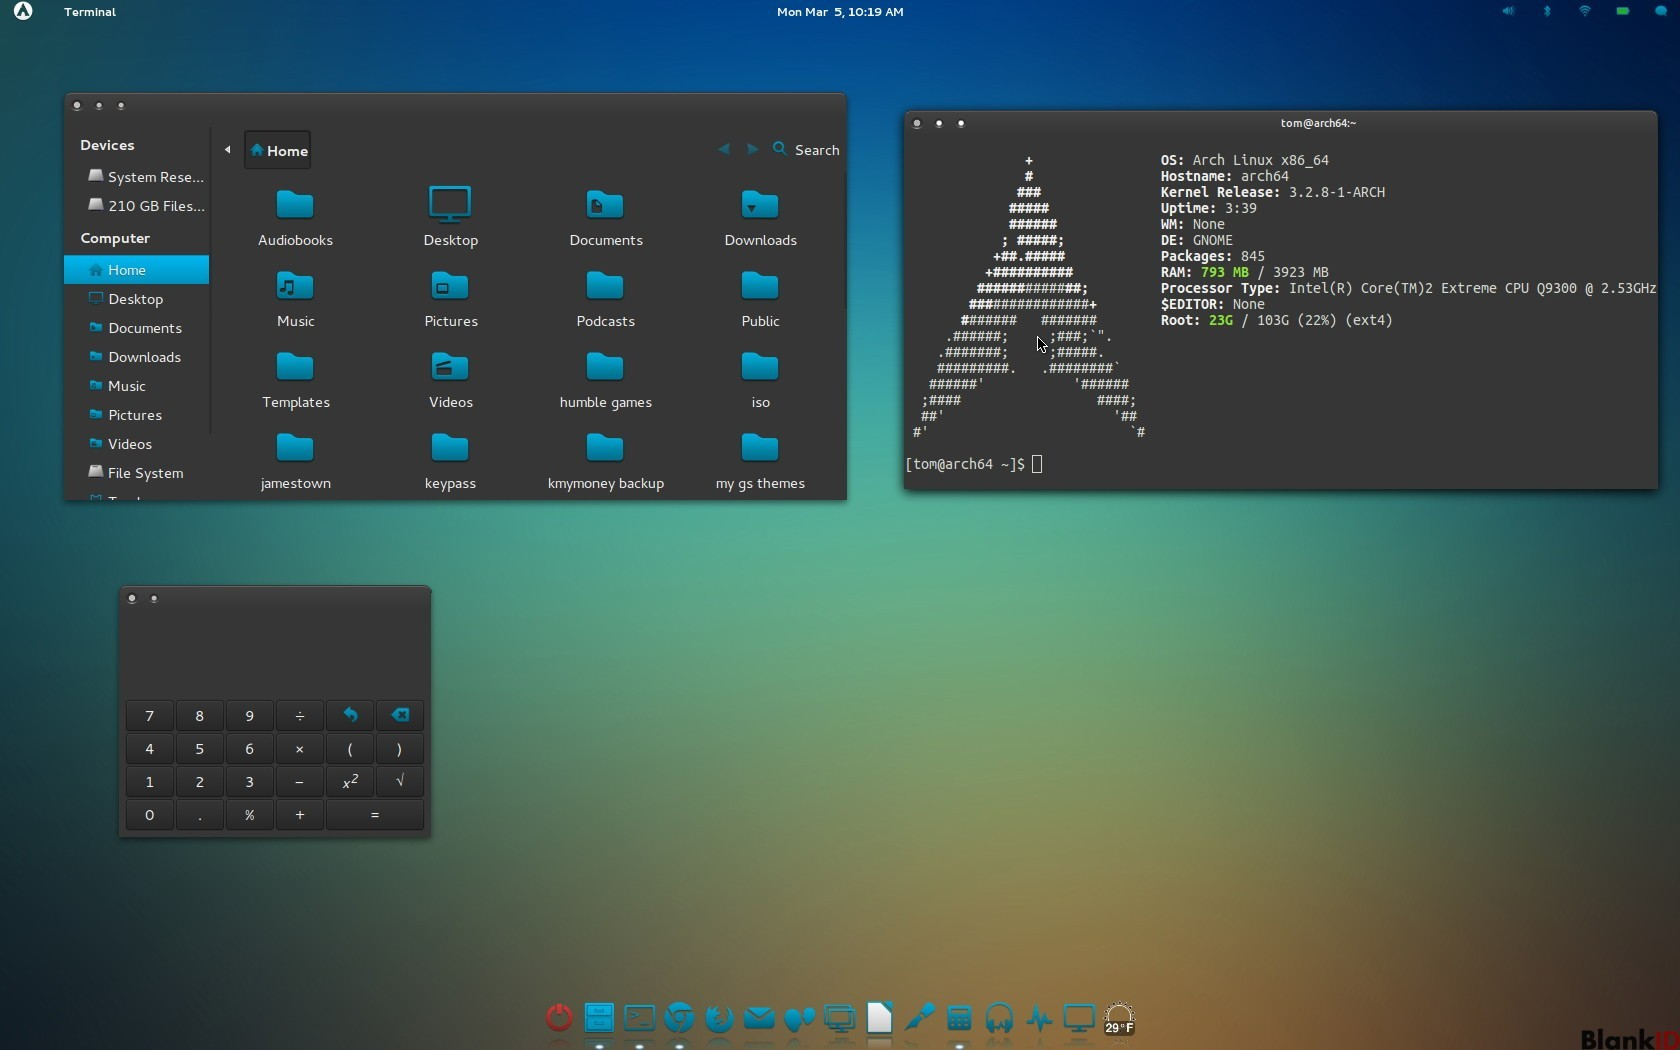 arch-linux-2015-07-01-is-now-available-for-download-485816-2